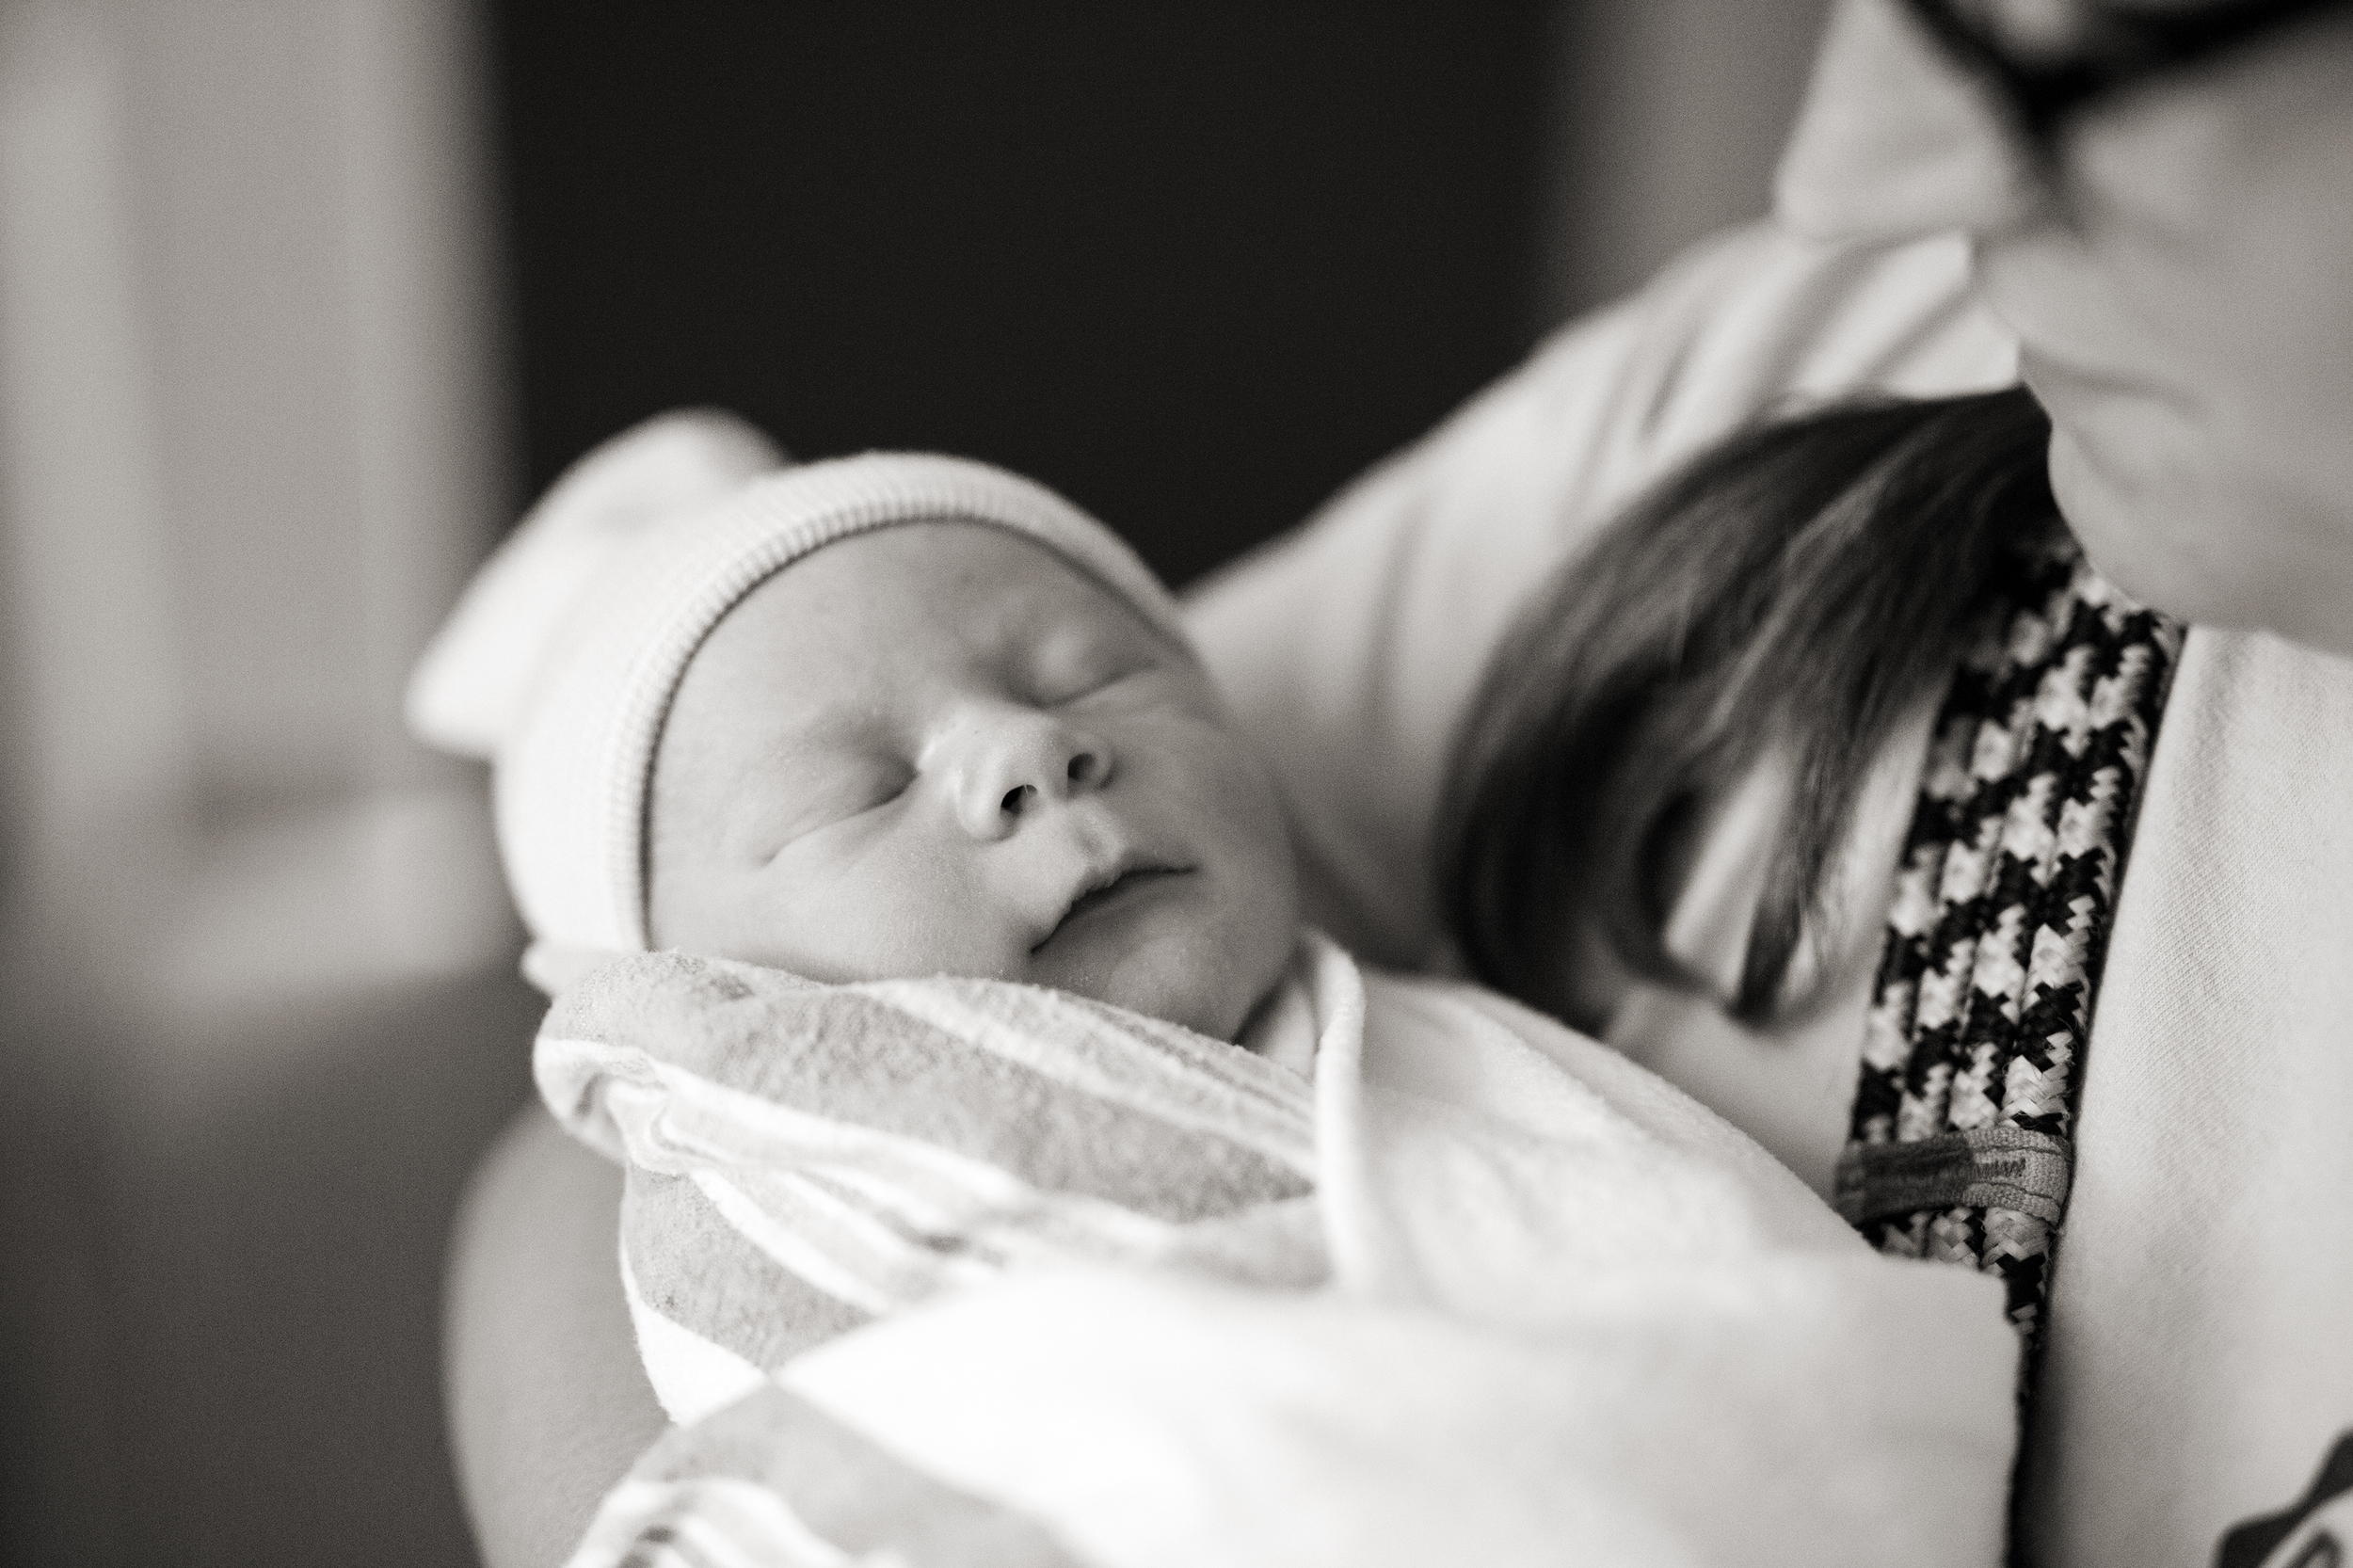 BKphotography2015_Towne Birth Blog062.jpg